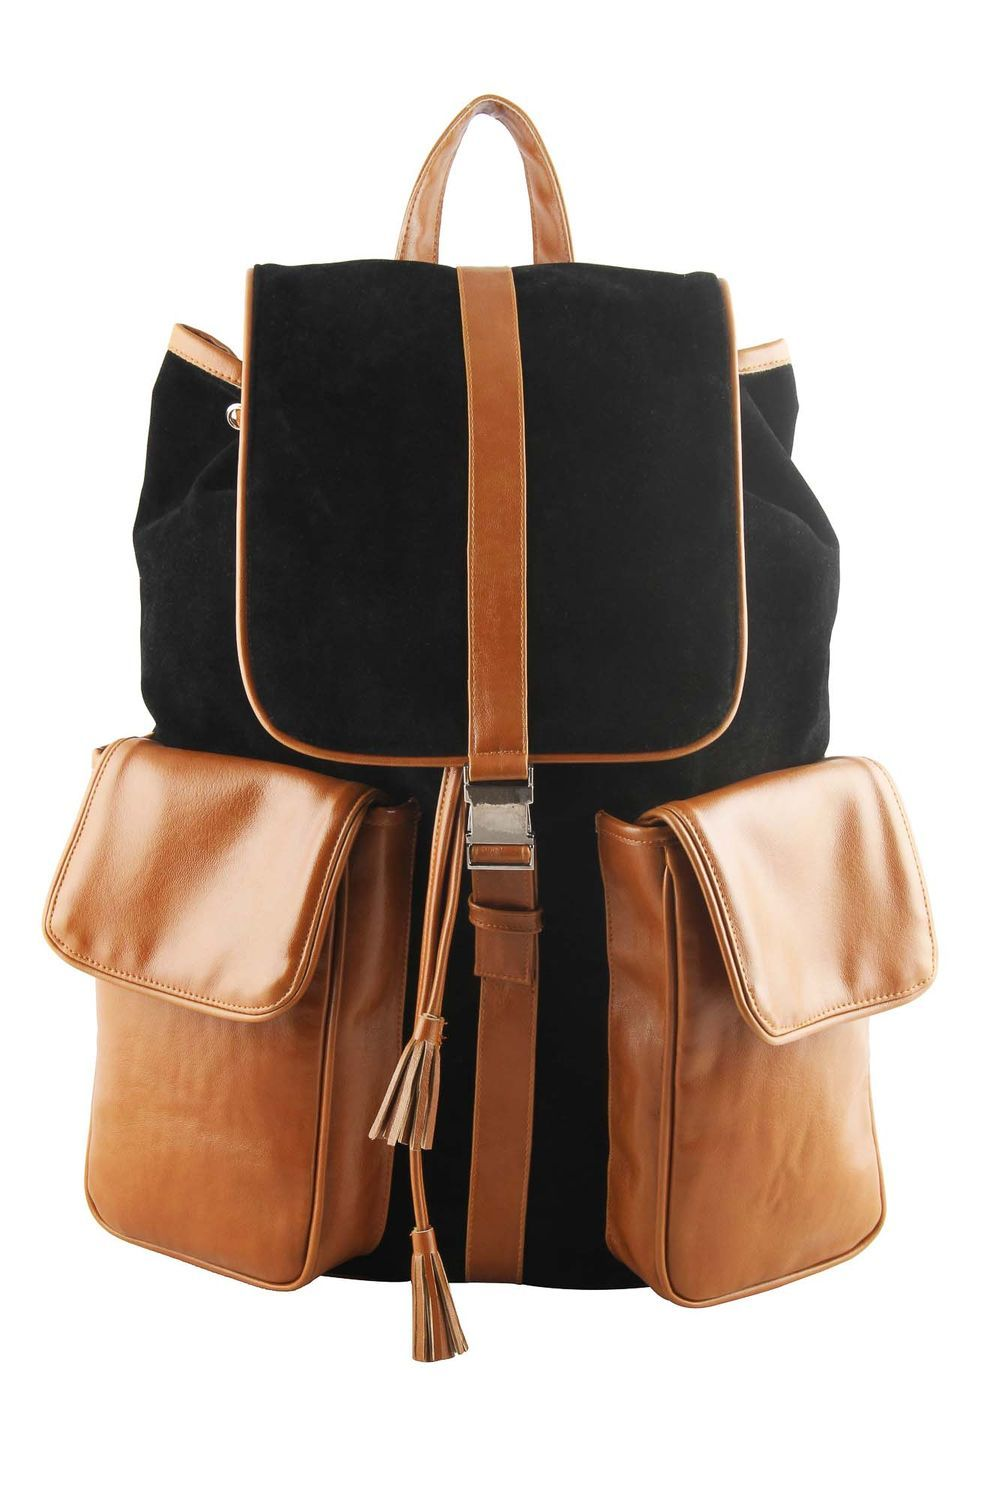 Oslo backpack via harp - Handbags | bags  | style  | mens  | woman  | borse  | sac  | unisex  | craft  | leather  | handmade  | jewellery. Click on the image to see more!